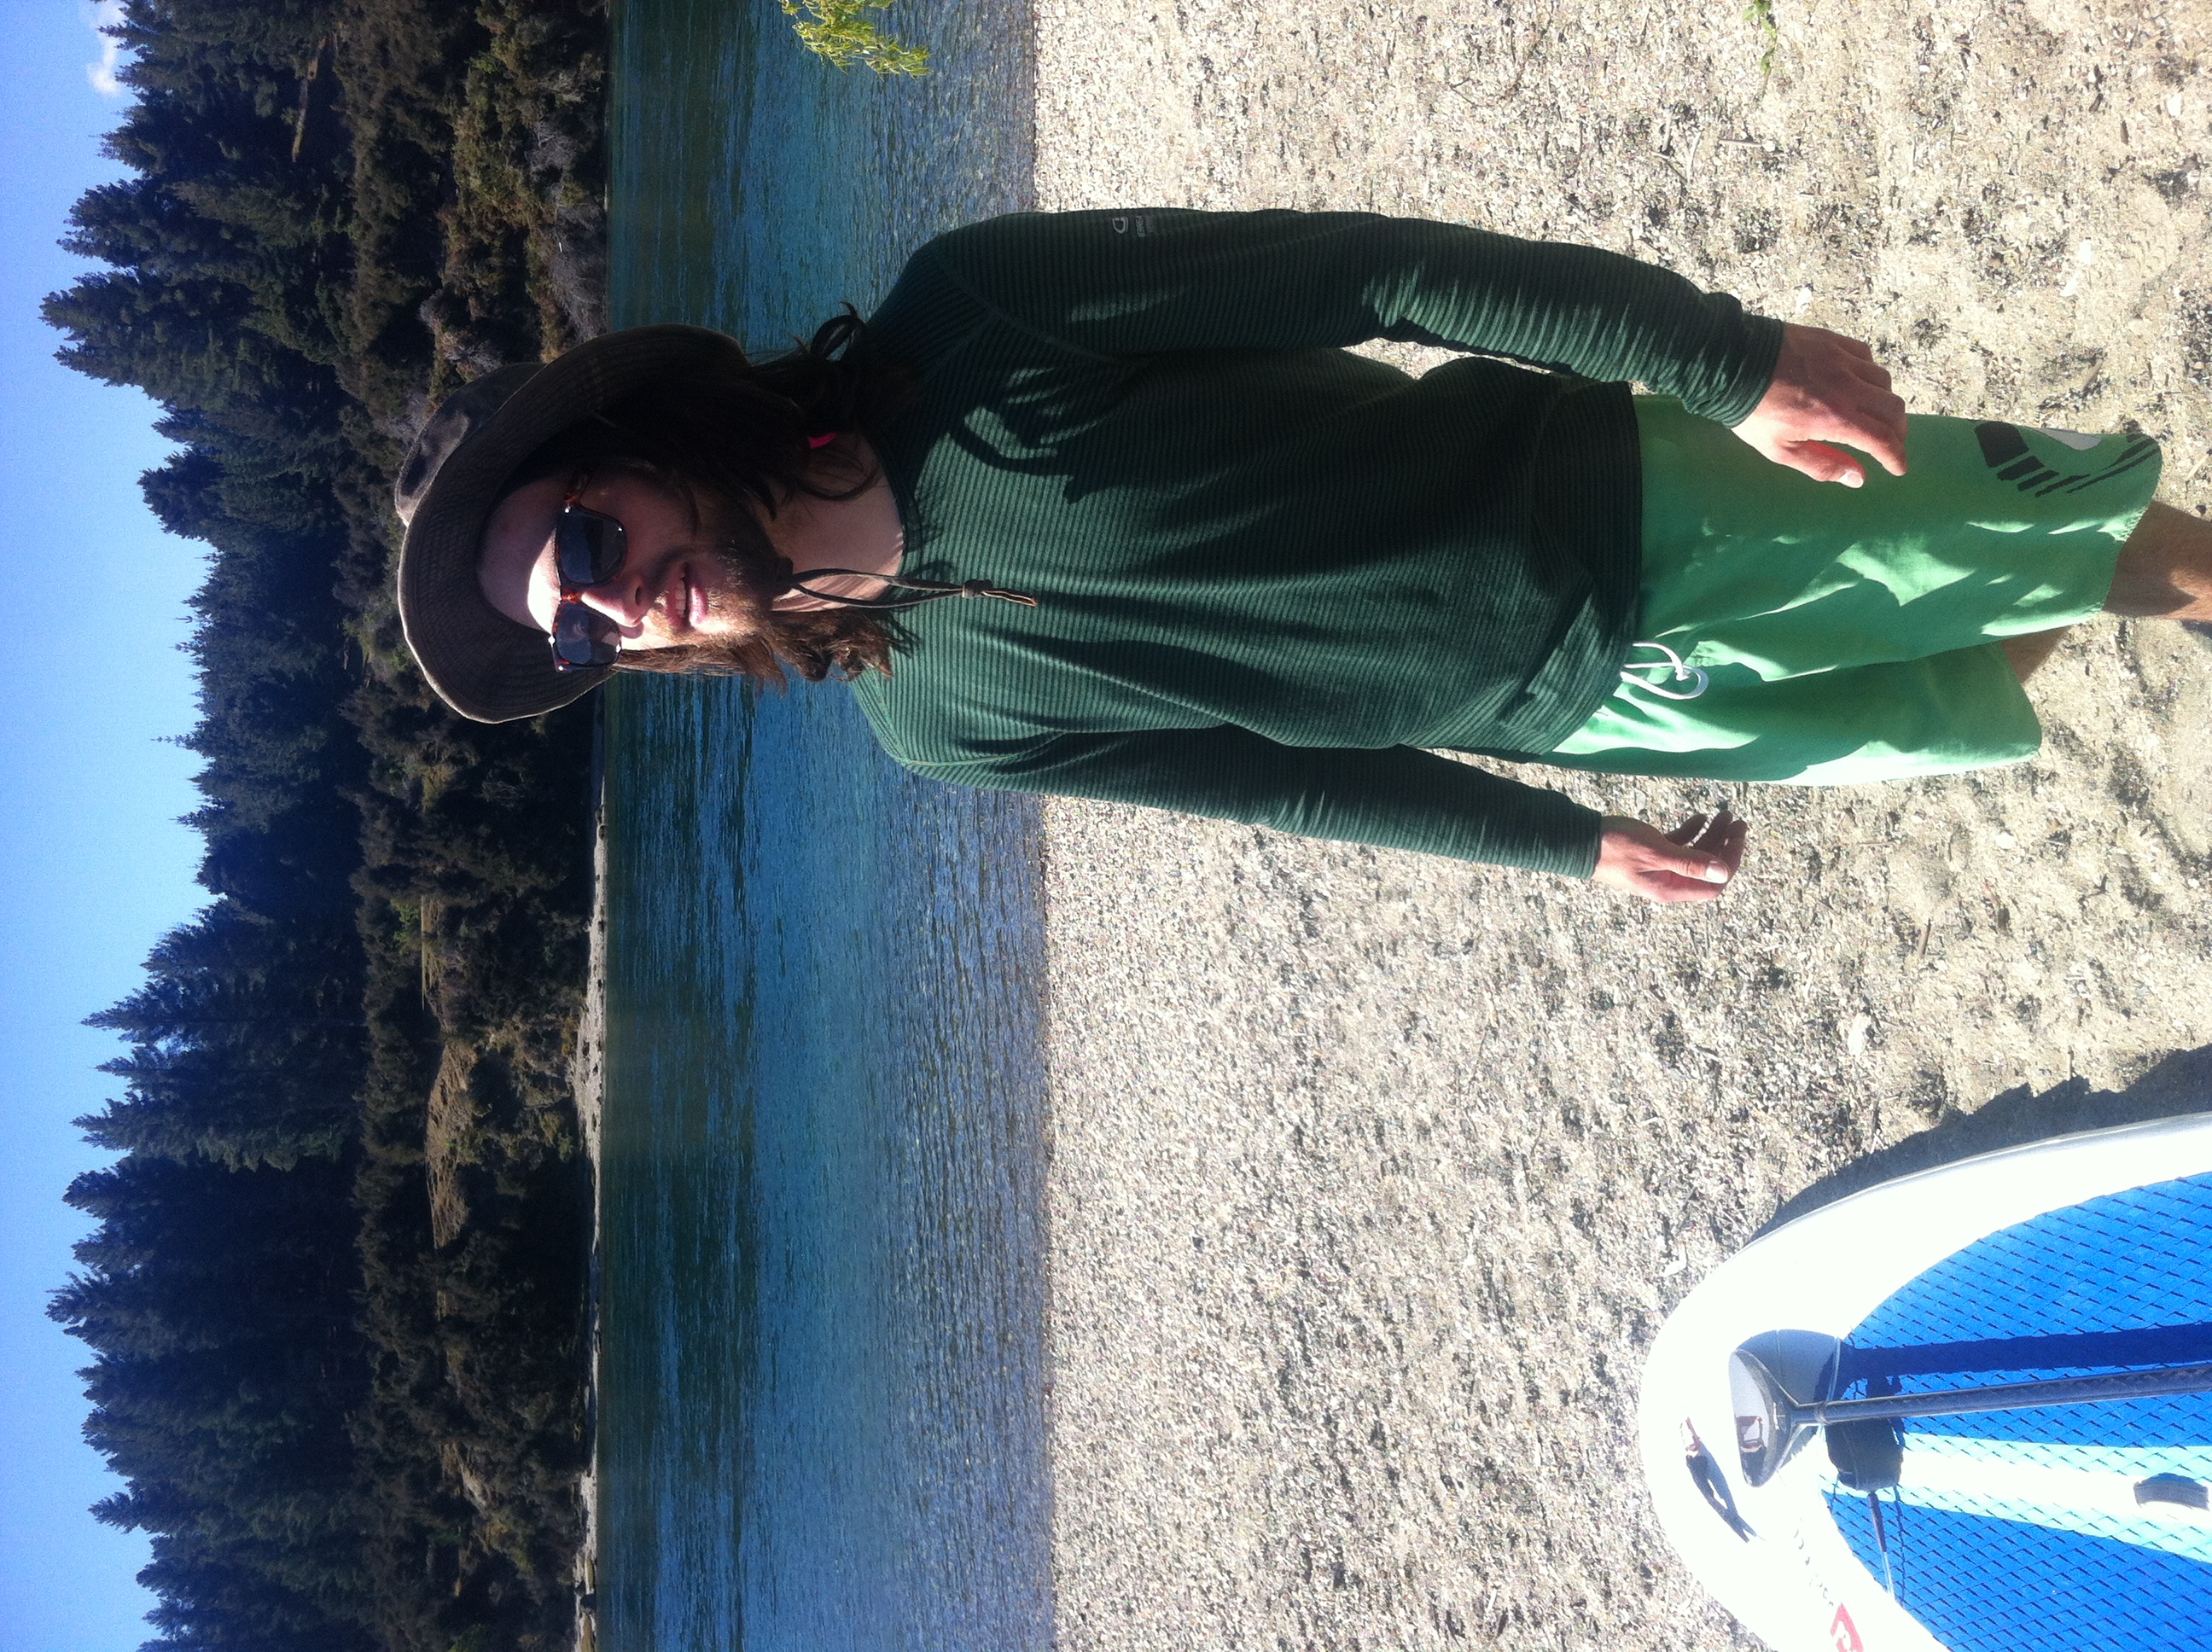 Getting ready to paddle for the first time. You know its adventure time when the Icebreaker Oasis long Sleeve comes out!